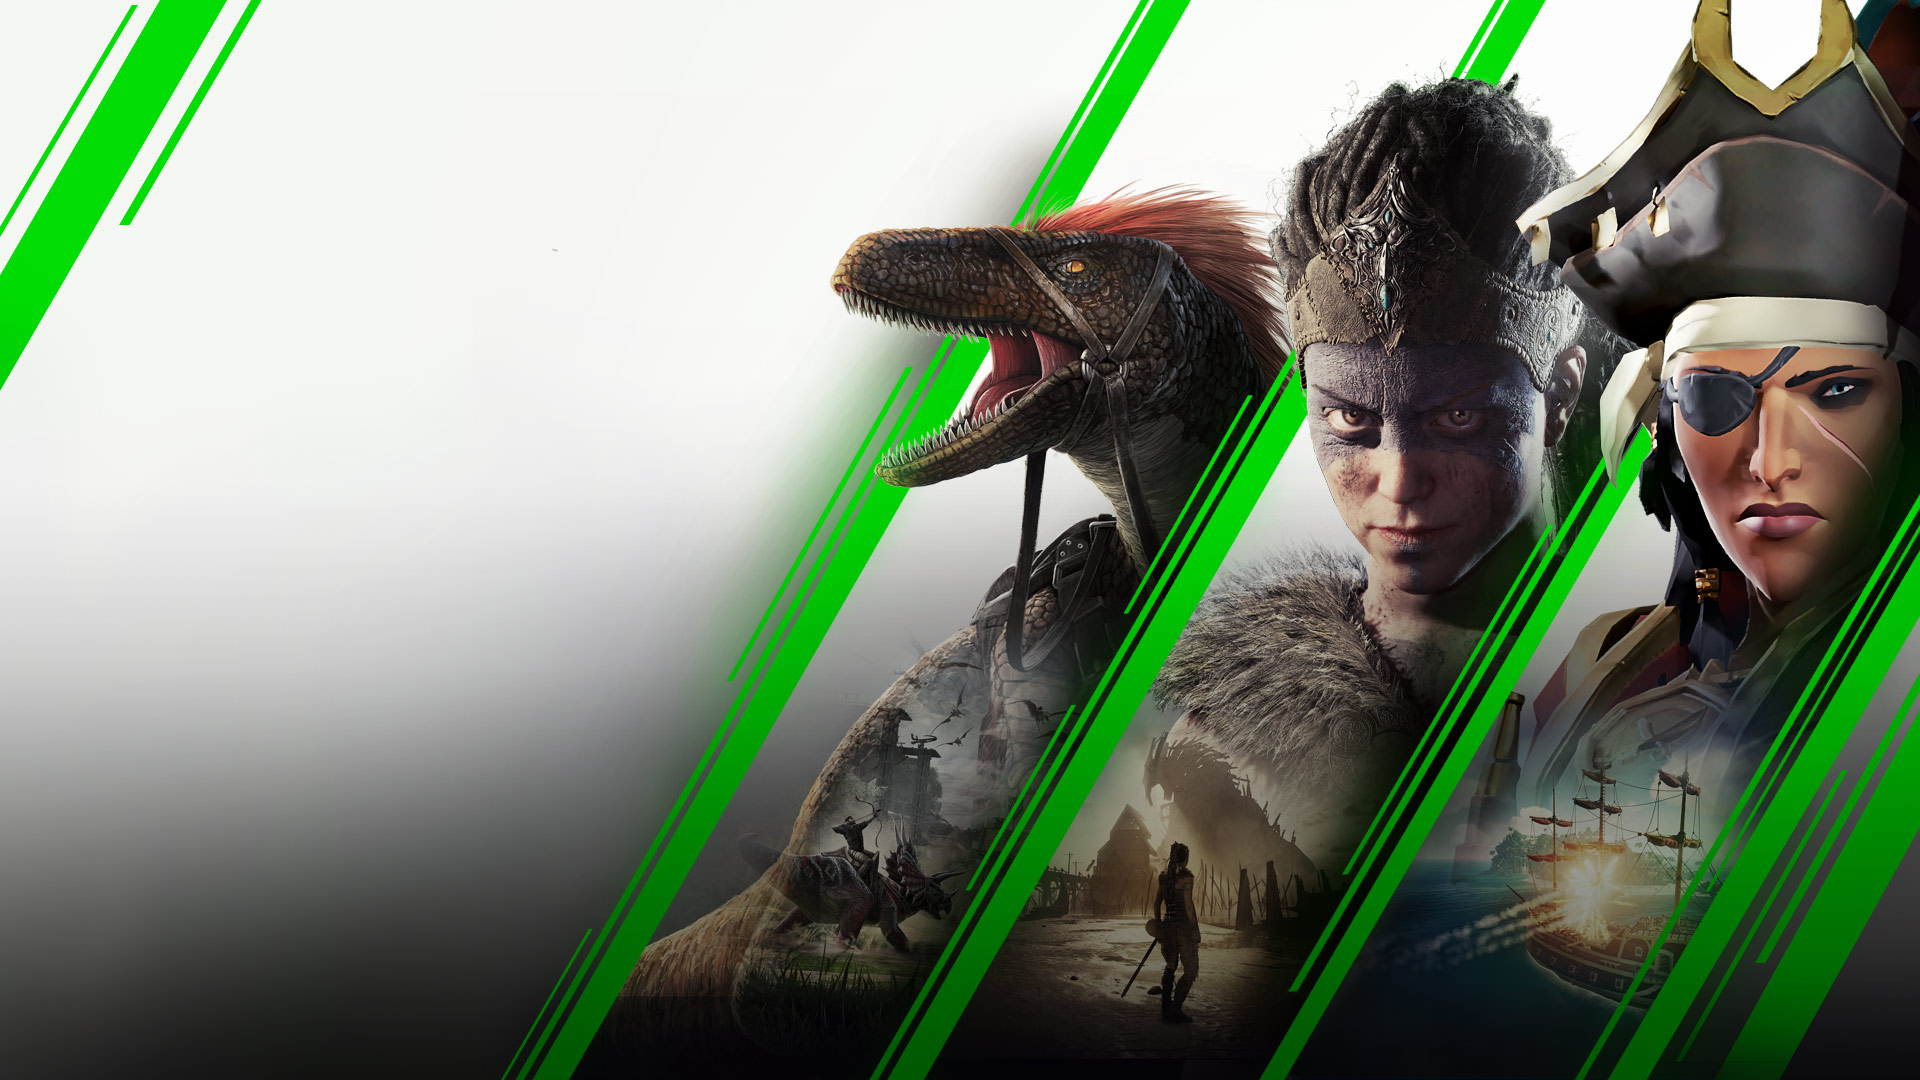 Linee diagonali verdi stilizzate che separano un predatore di ARK: Survival Evolved, Senua di Hellblade: Senua's Sacrifice e una piratessa di Sea of Thieves.